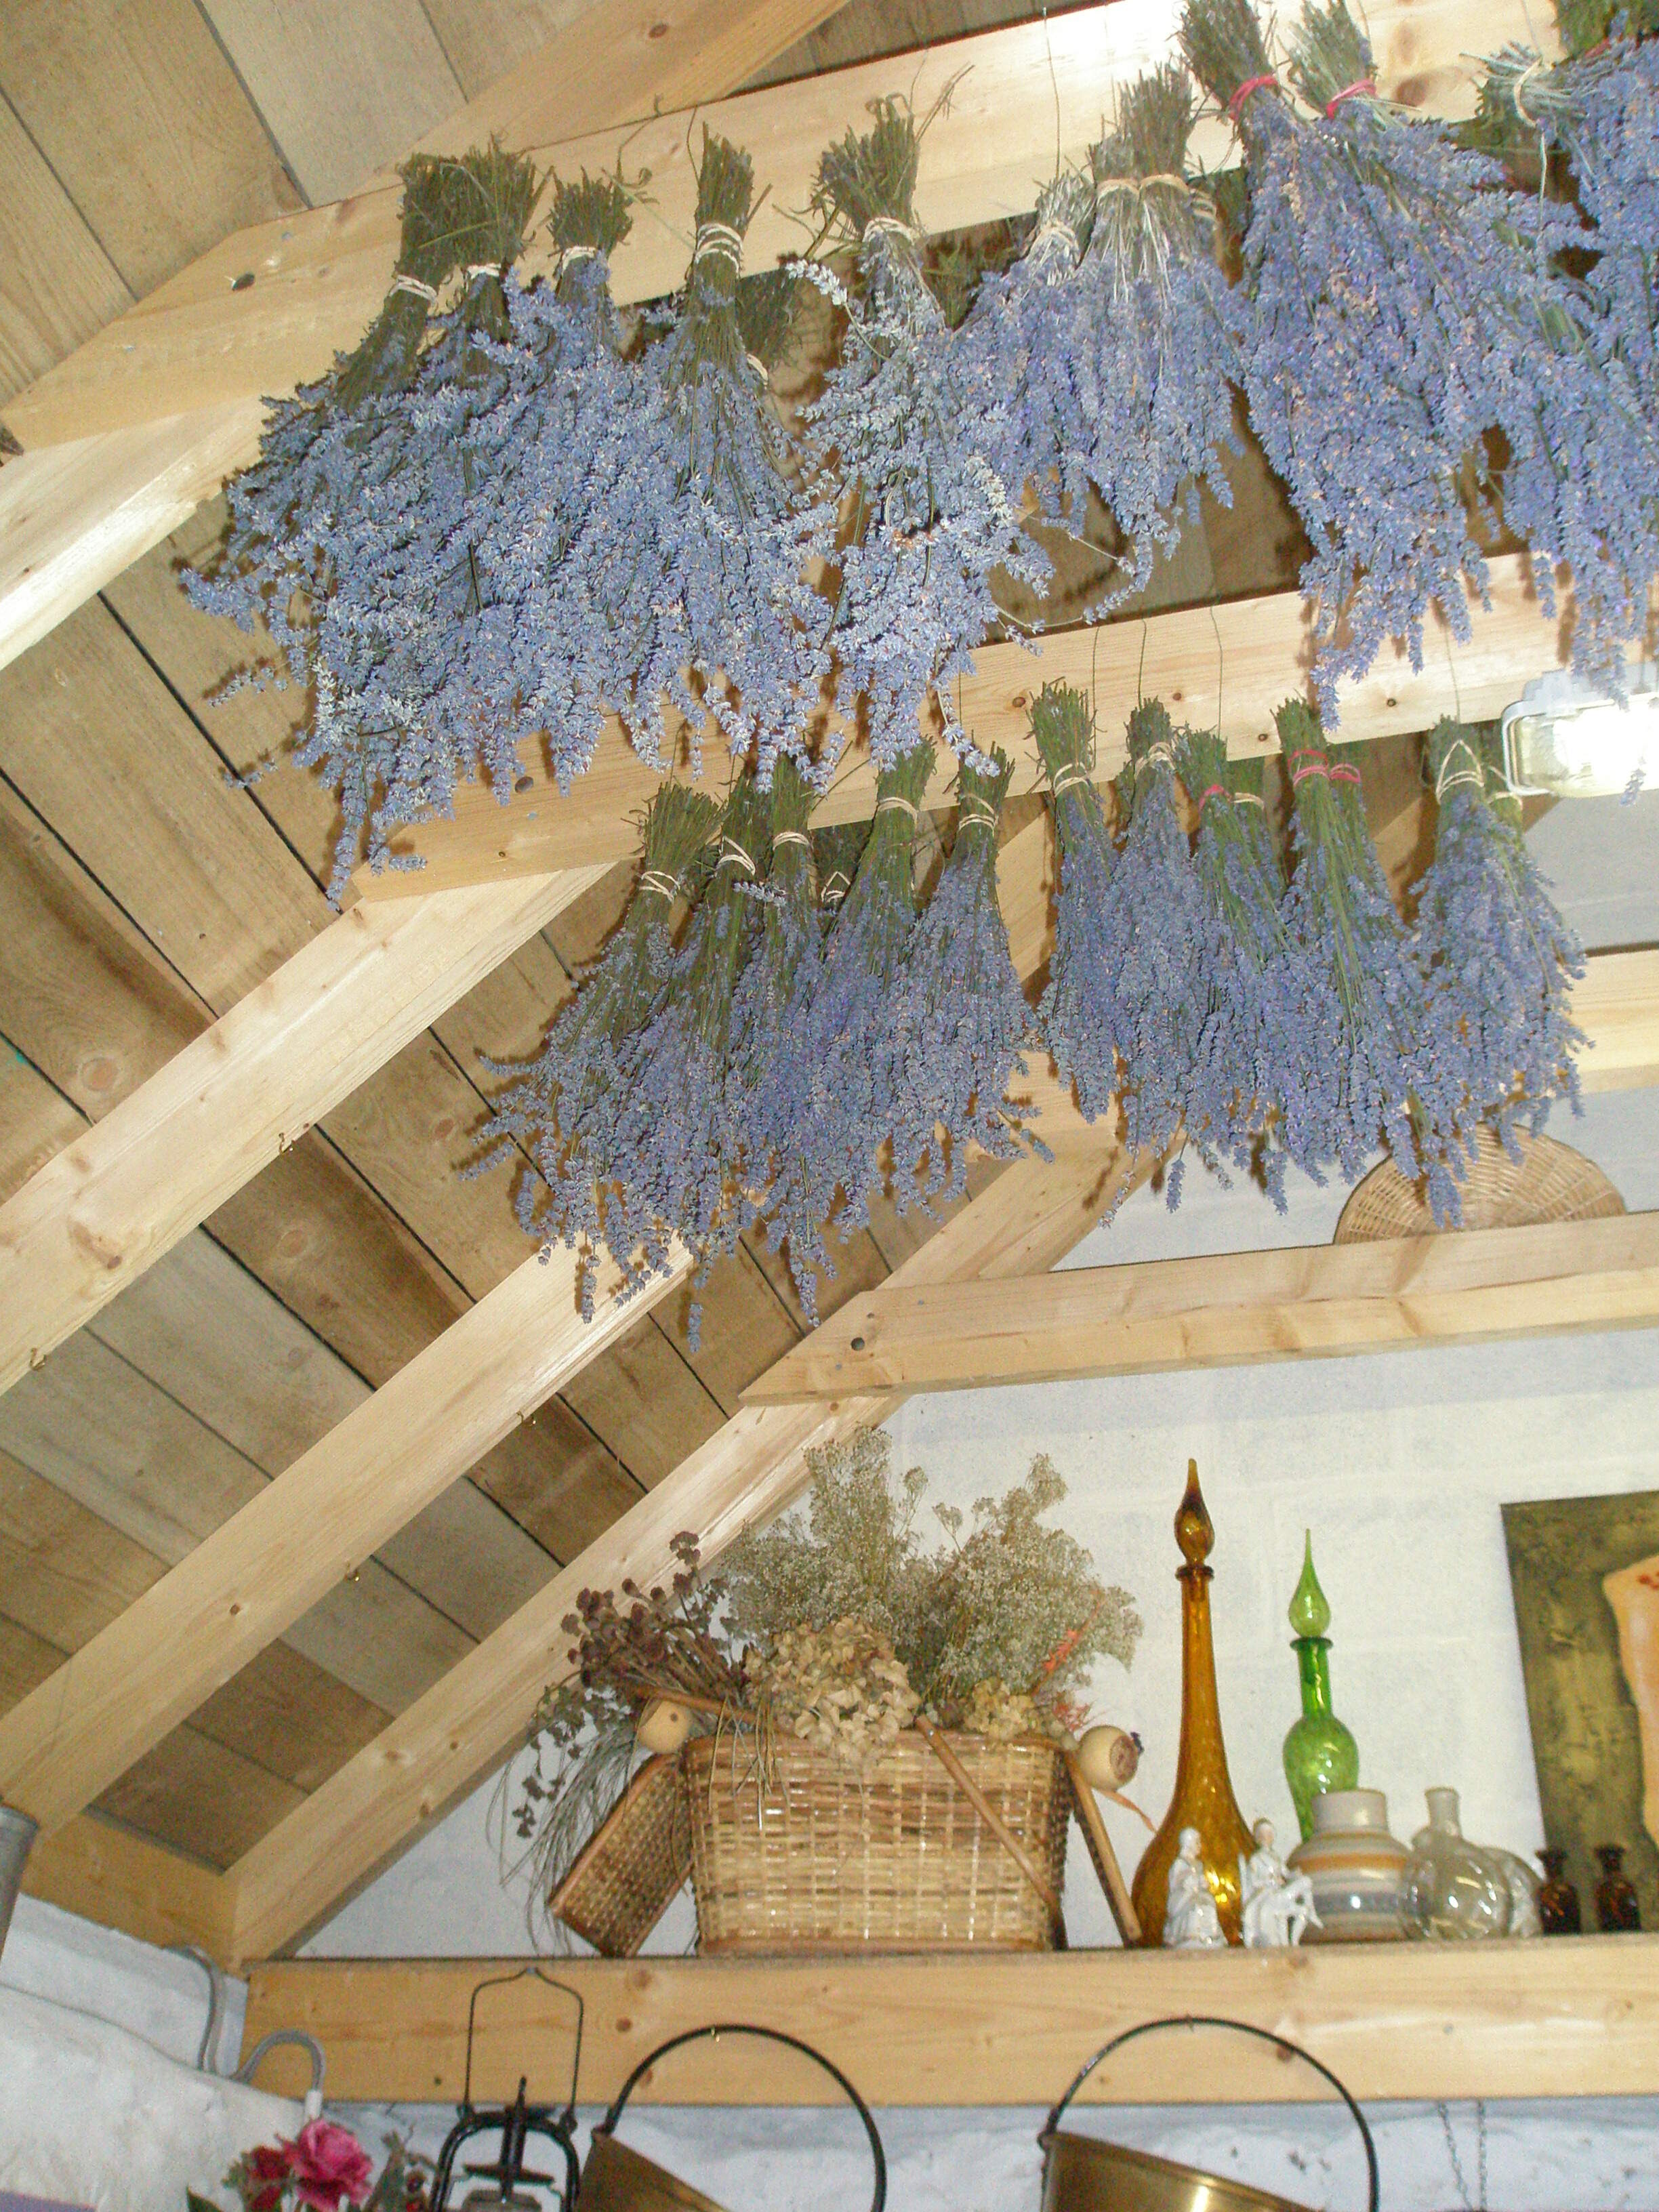 Drying room at Lavender Farm, Scotland 2006